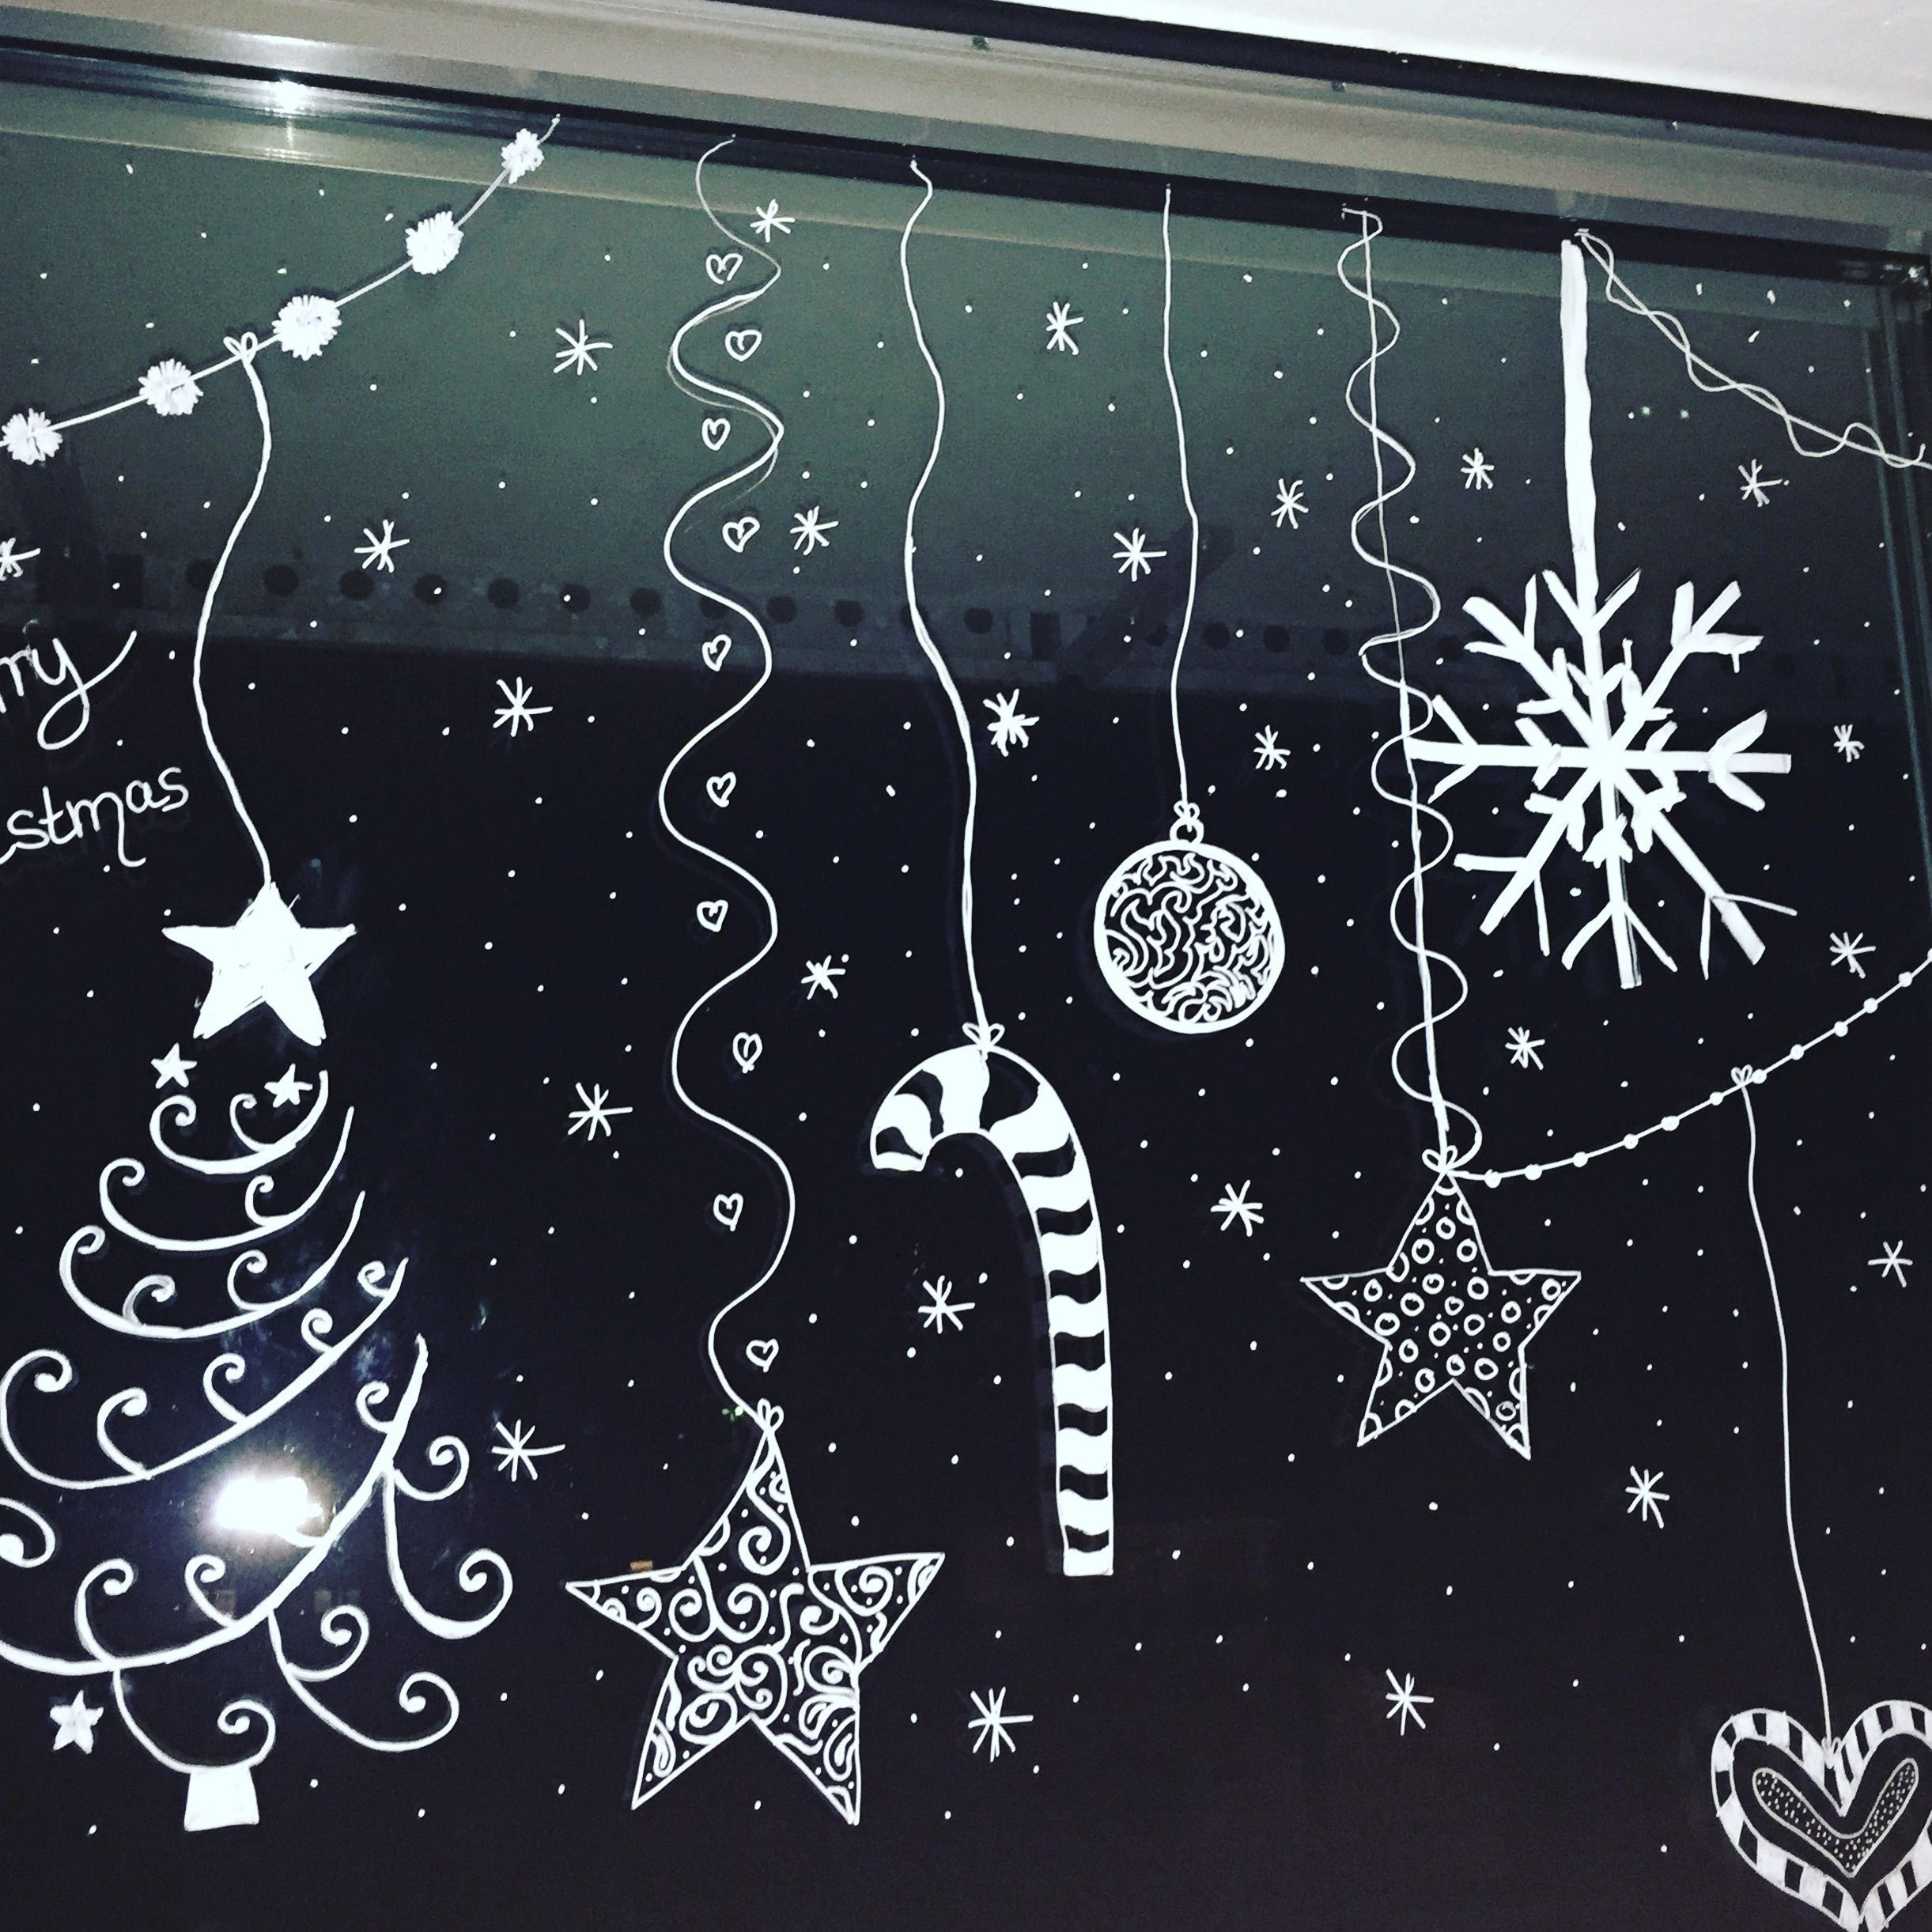 Chalk Pencil Window Painting Weihnachtsfensterdeko Chalk Pencil Window Painting In 2020 Christmas Window Decorations Christmas Paintings Christmas Wallpaper